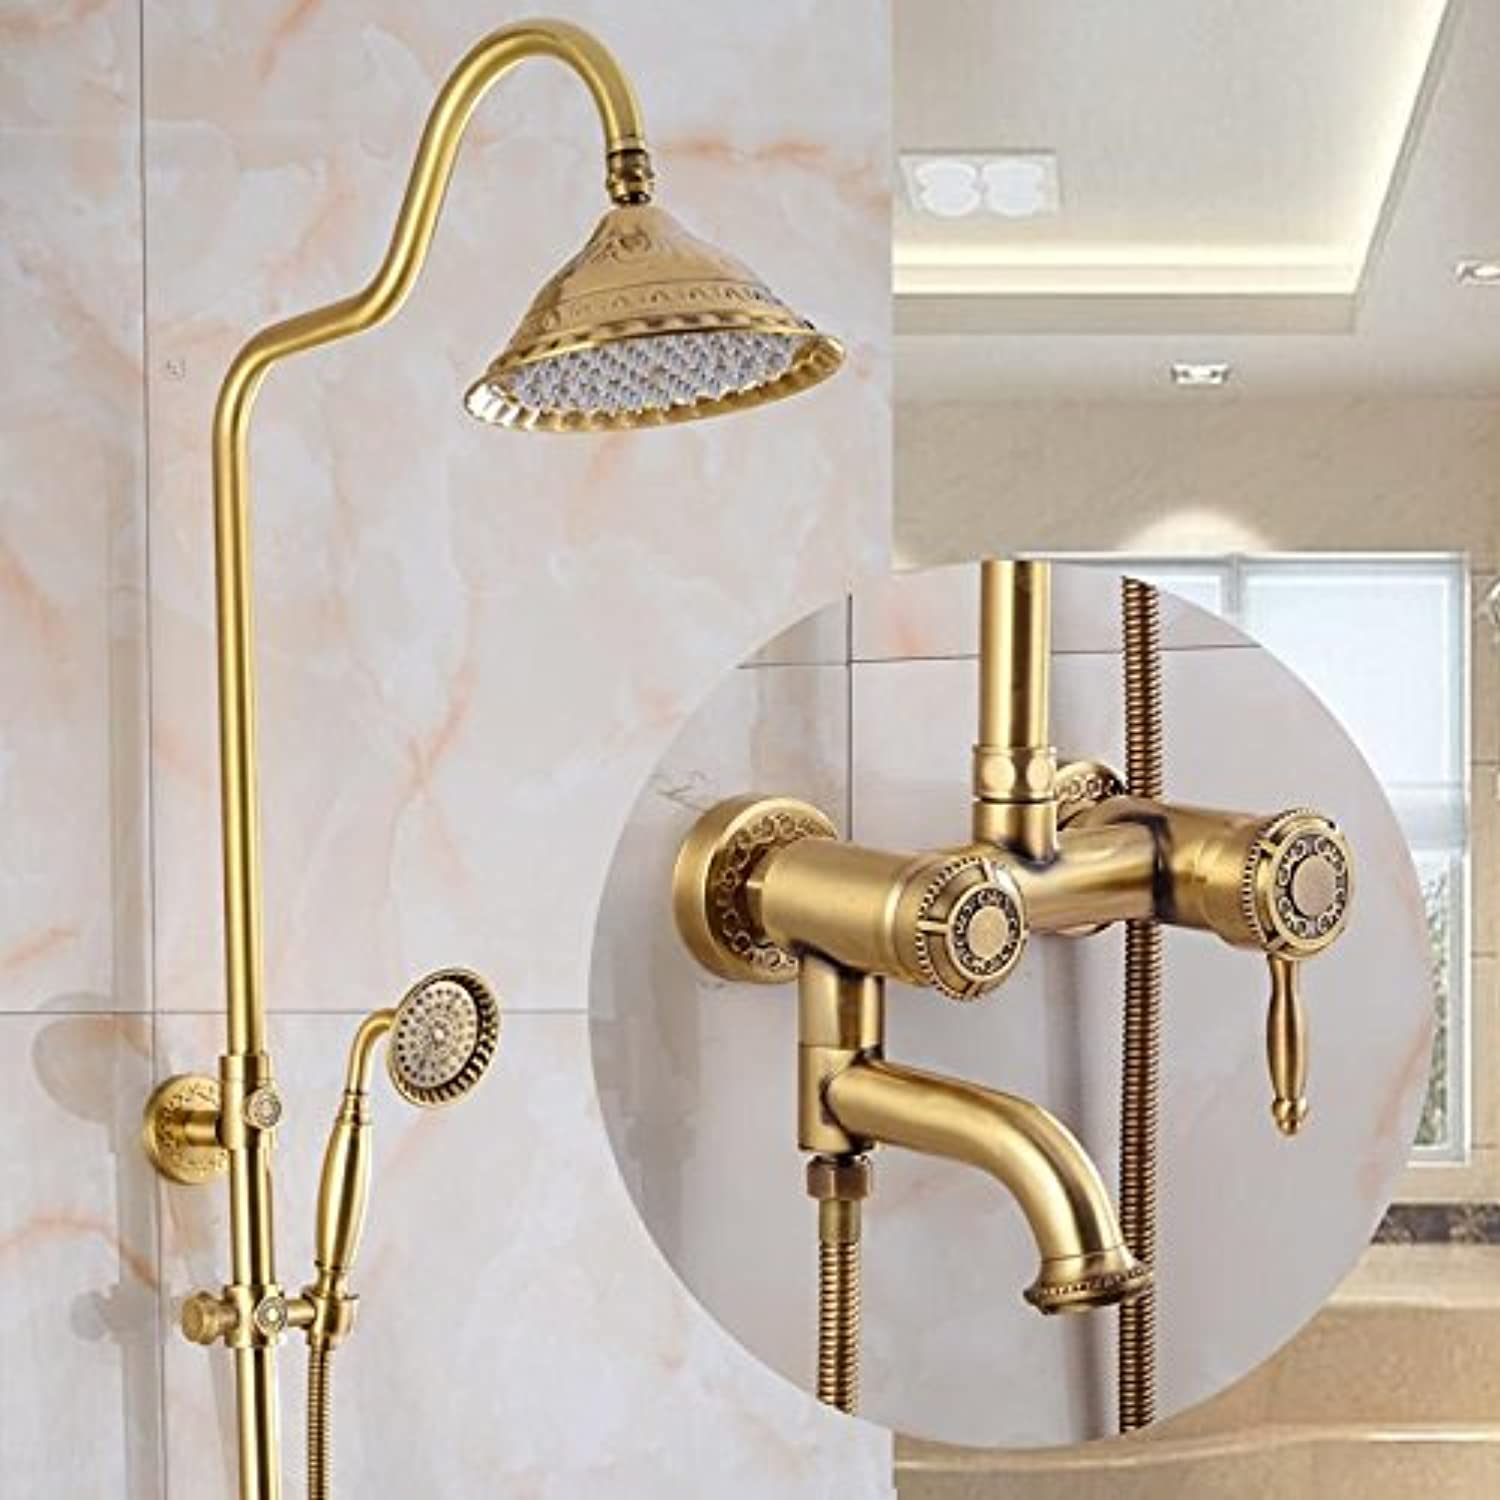 SADASD European Style Bathroom Basin Faucet Copper Antique Shower Faucet Set Double Nozzle redatable With Lifting Ceramic Valve Hot and Cold Mixer Tap Hose